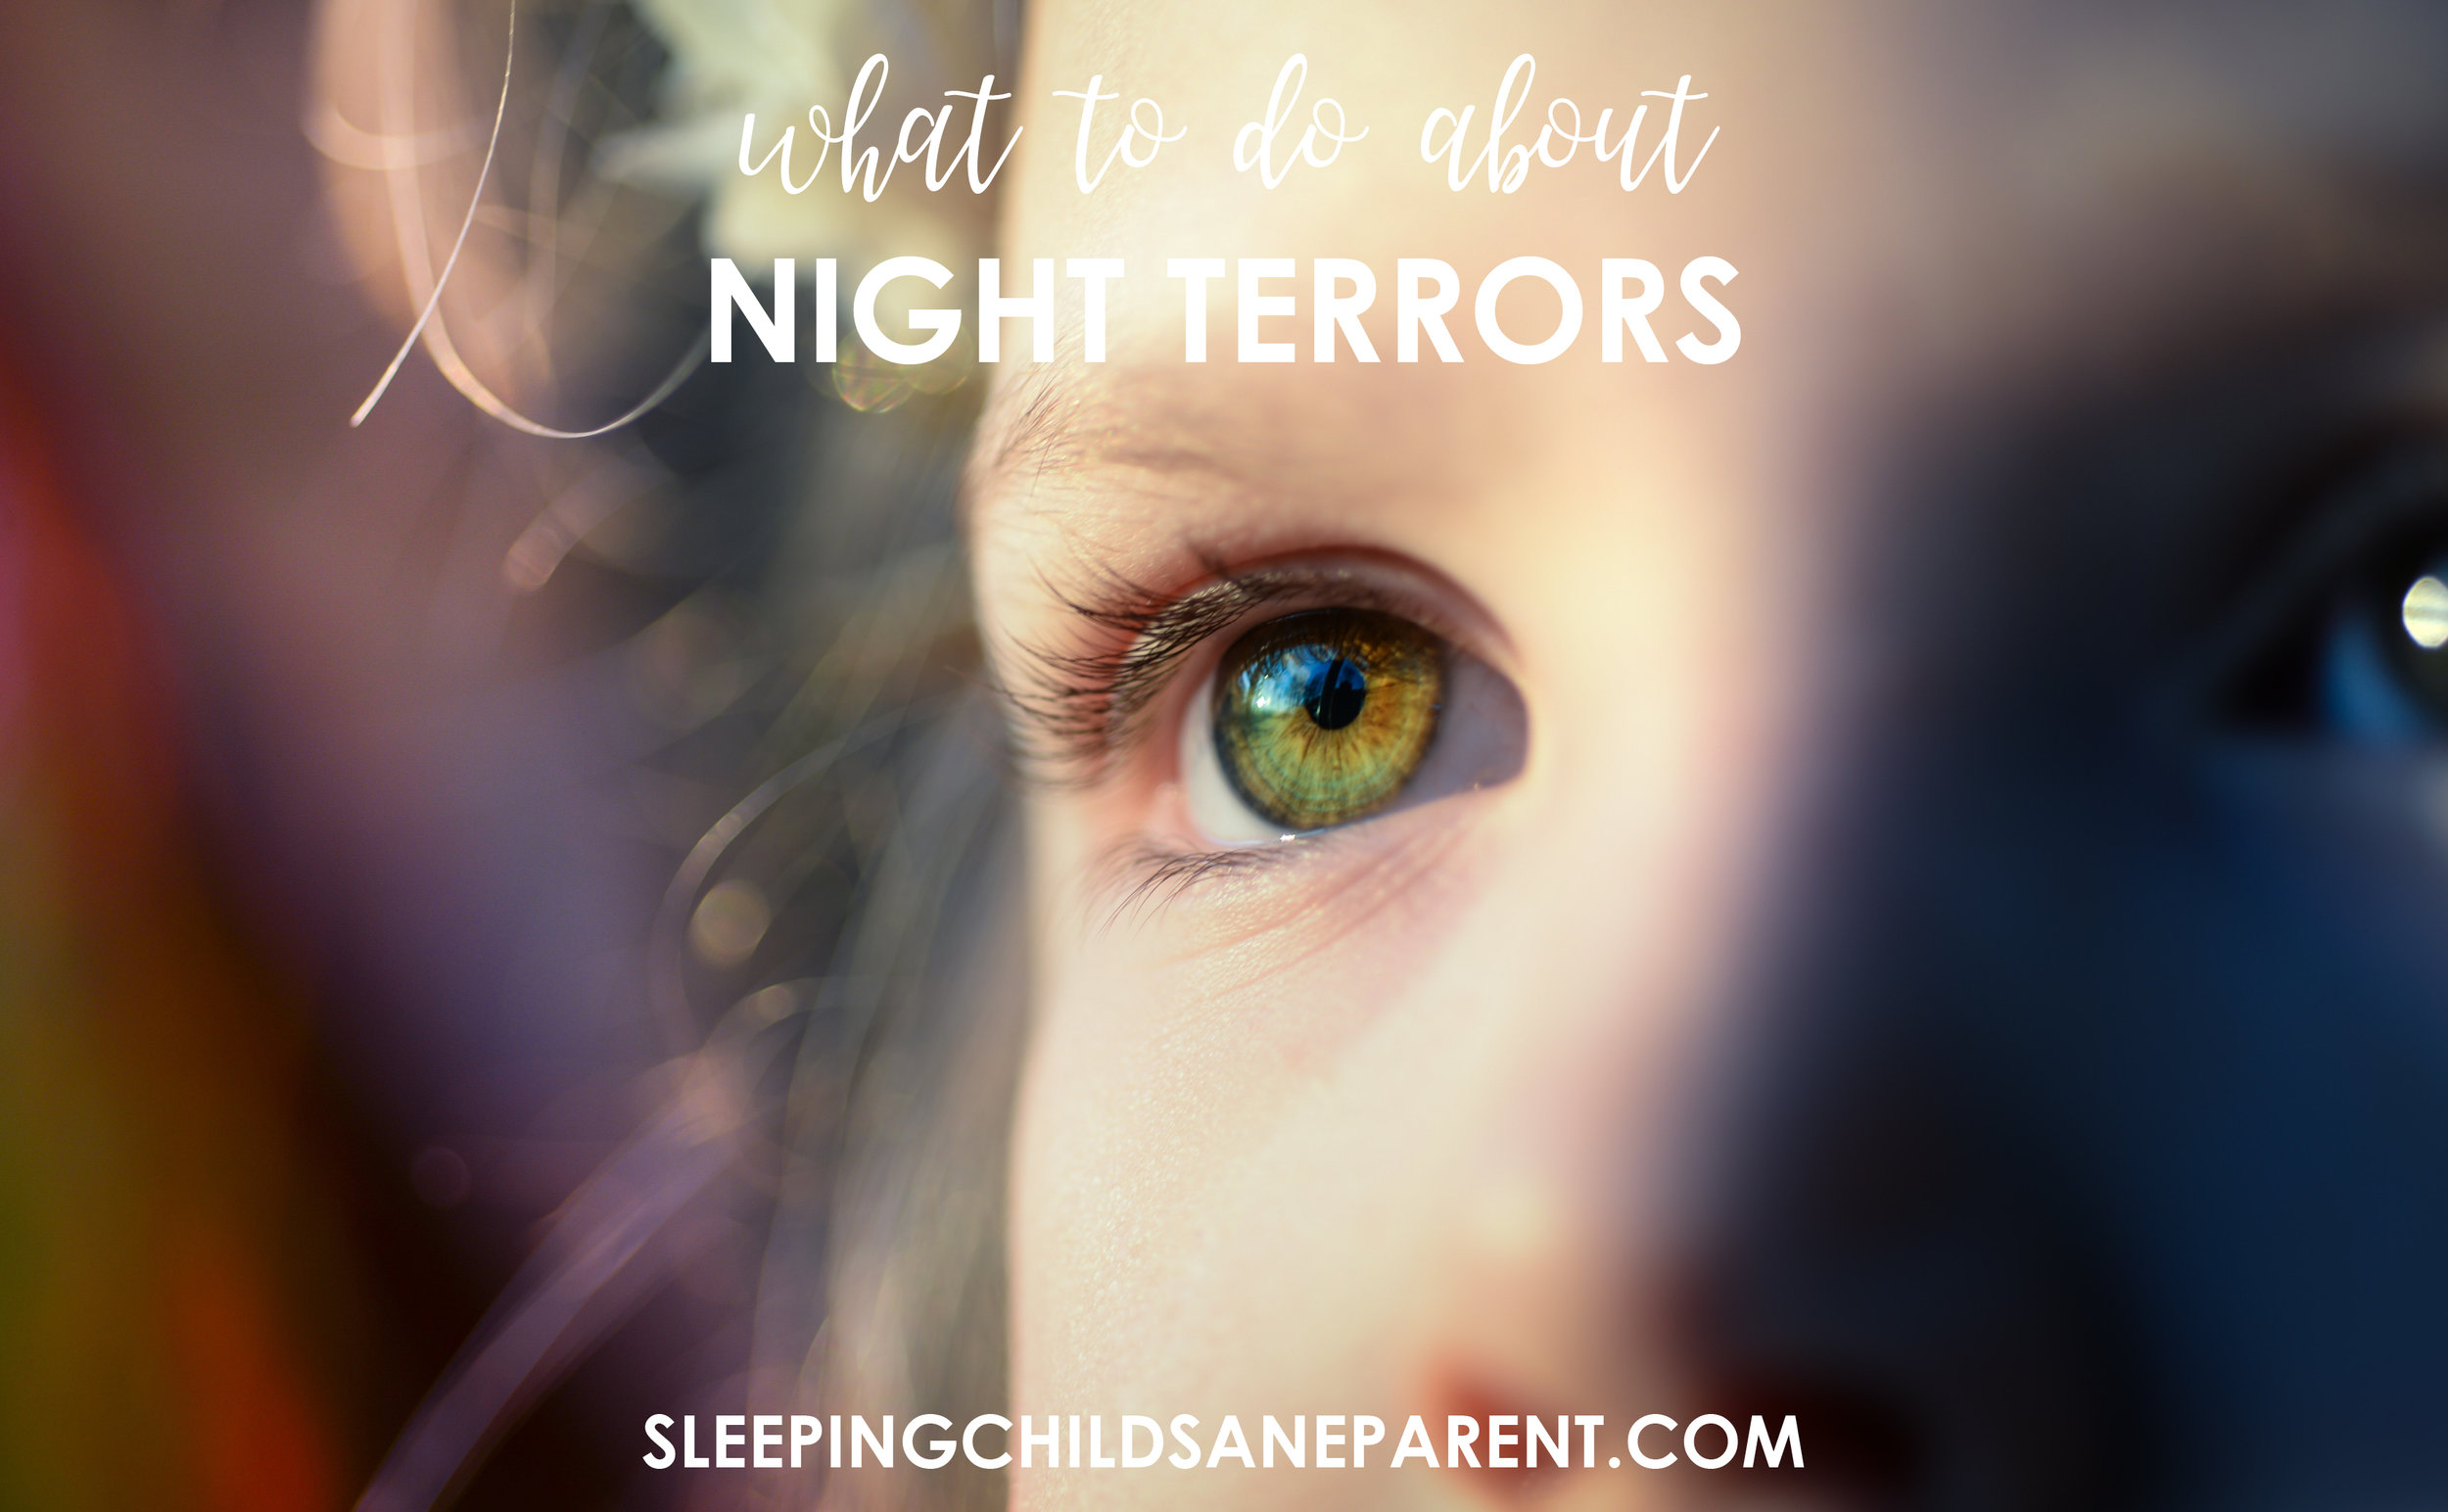 Is your child having a nightmare or a night terror? If it's a night terror, how can you make it stop?! Check out this blog post for tips about how to put those night terrors to bed.